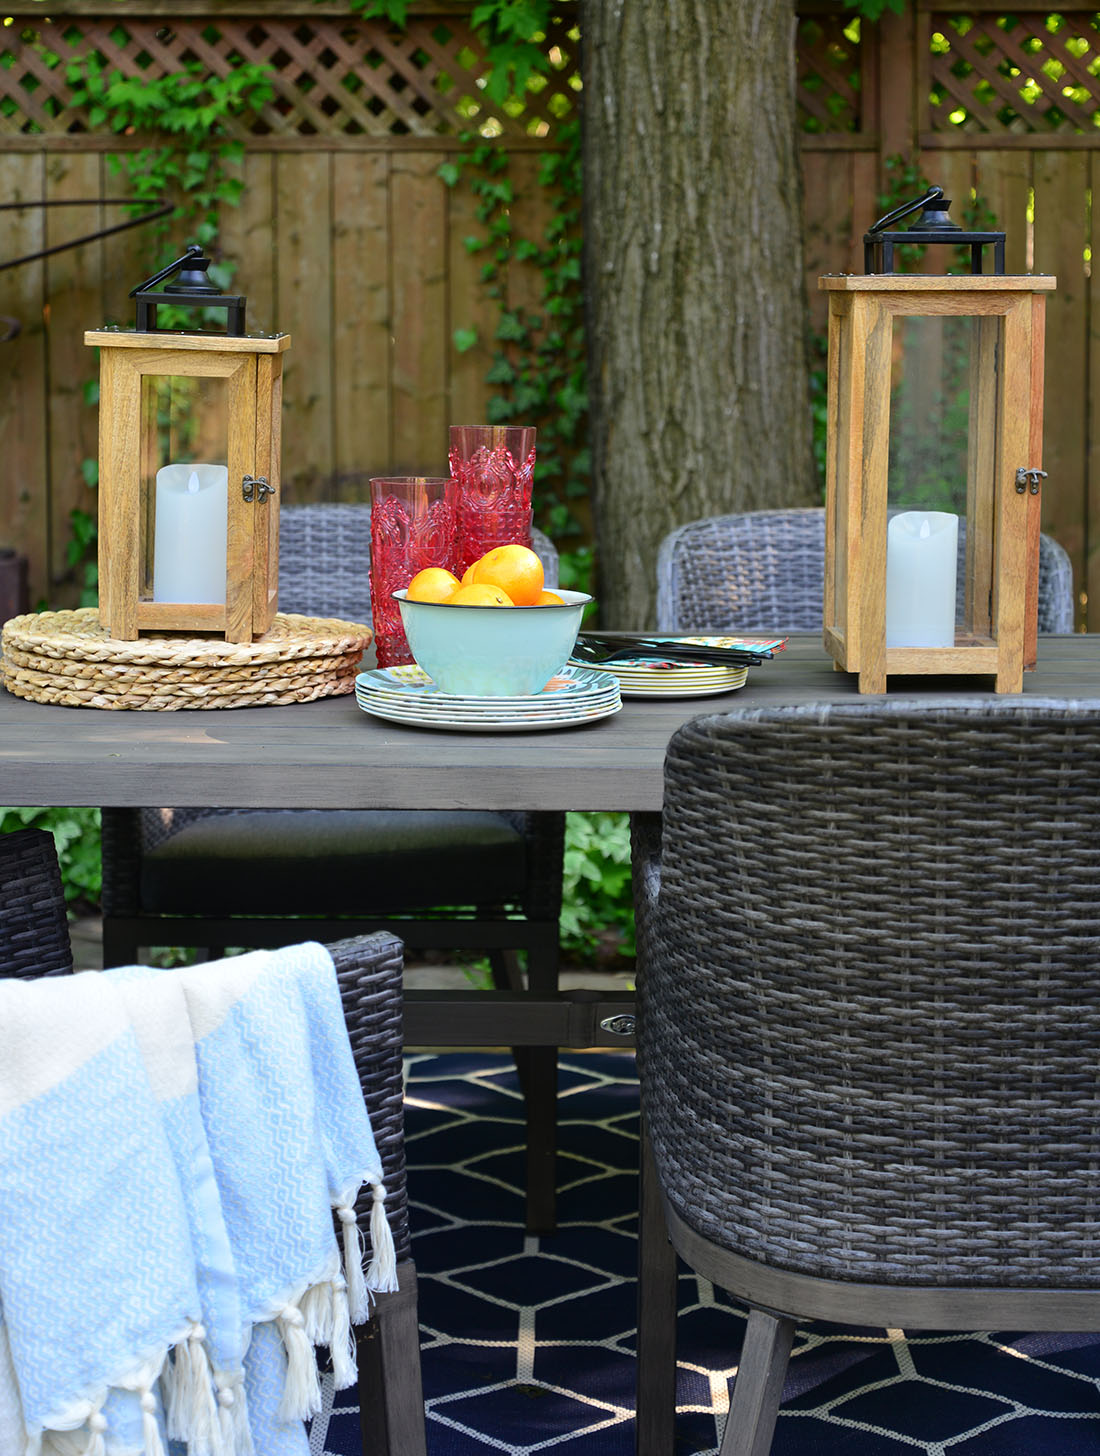 summer table setting, outdoor dining decor, outdoor summer decor, oranges in bowls, wooden lanterns on table